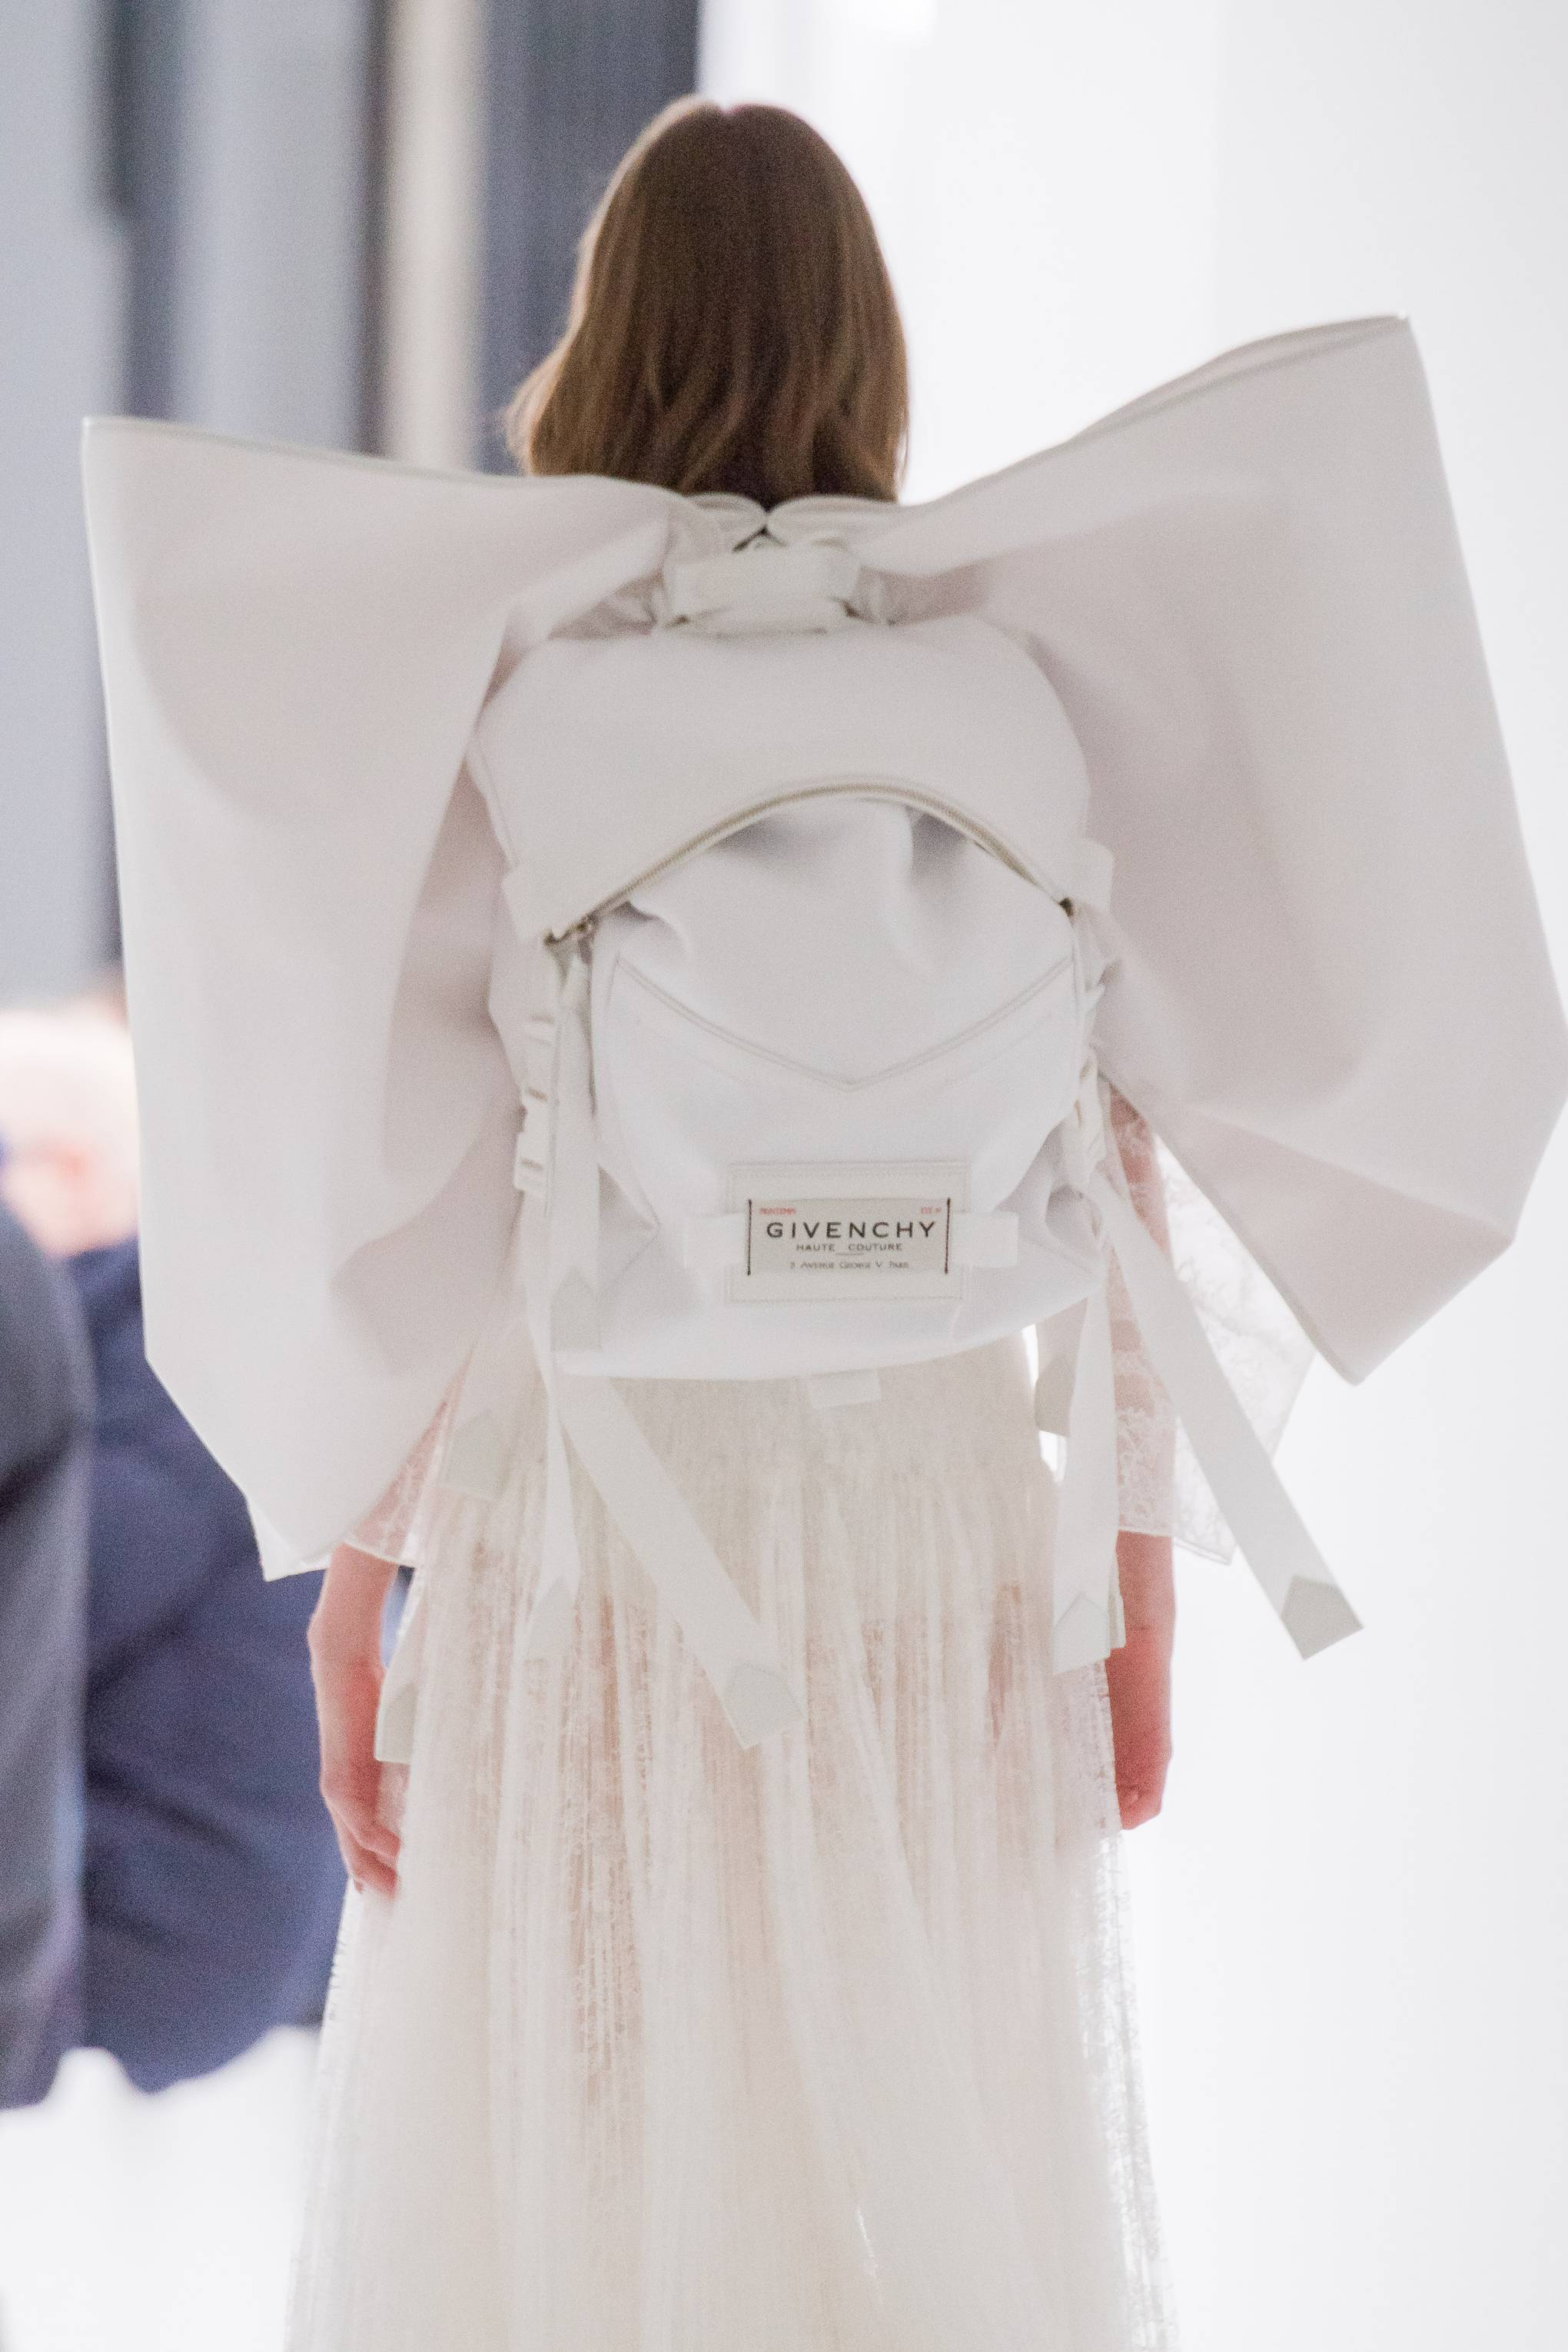 e0271d7a982 Clare Waight Keller's Givenchy Bow-Backpack Hybrids Are A Couture  Streetwear Dream | British Vogue